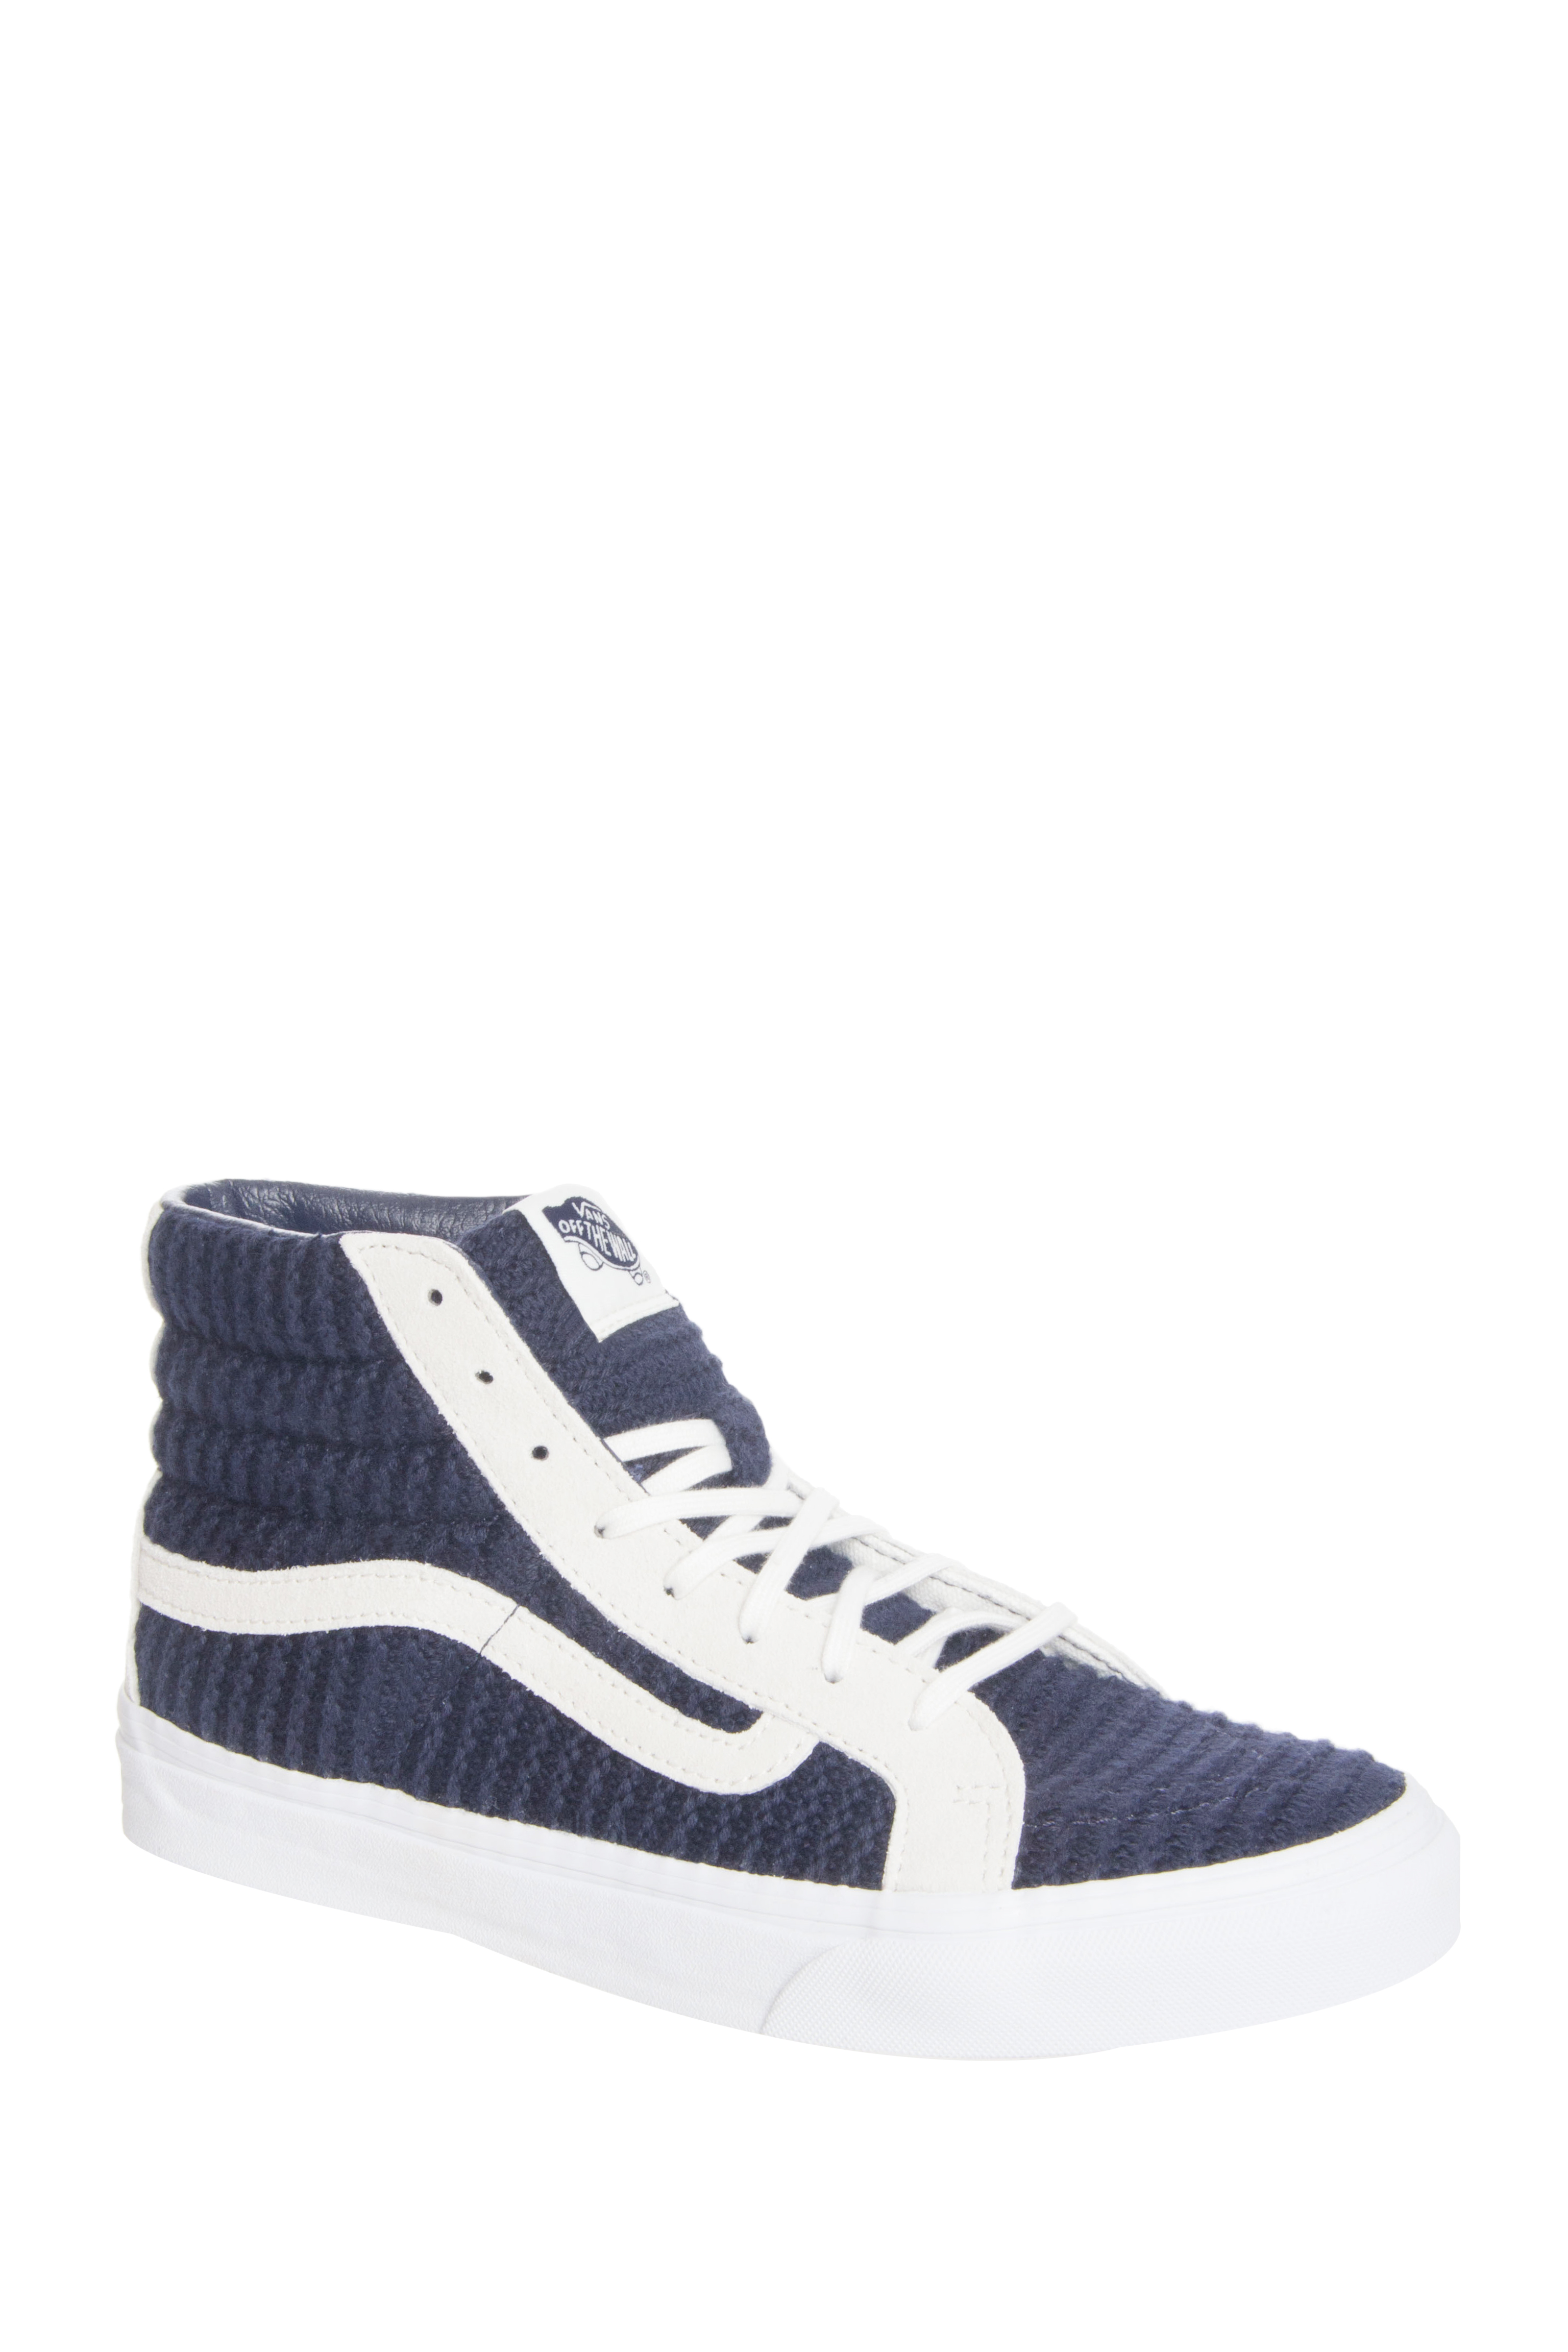 Vans Sk8-Hi Slim Woven Suede High Top Sneakers - Navy Blue / True White